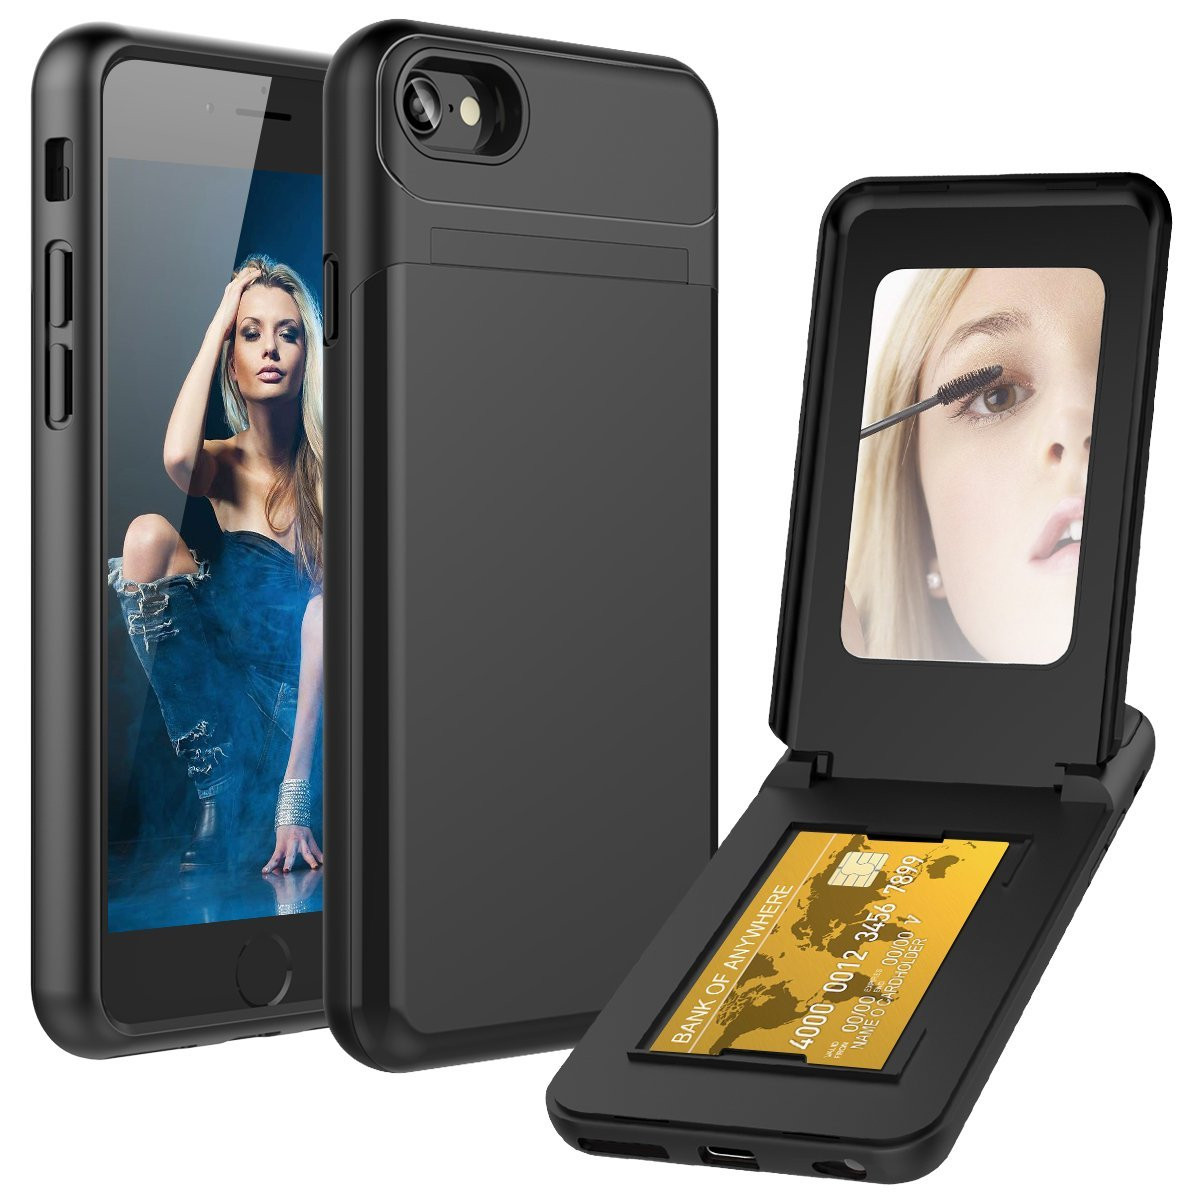 Apple iPhone 6s Plus -  Hard Phone Case with Hidden Mirror and Card Holder Compartment, Black